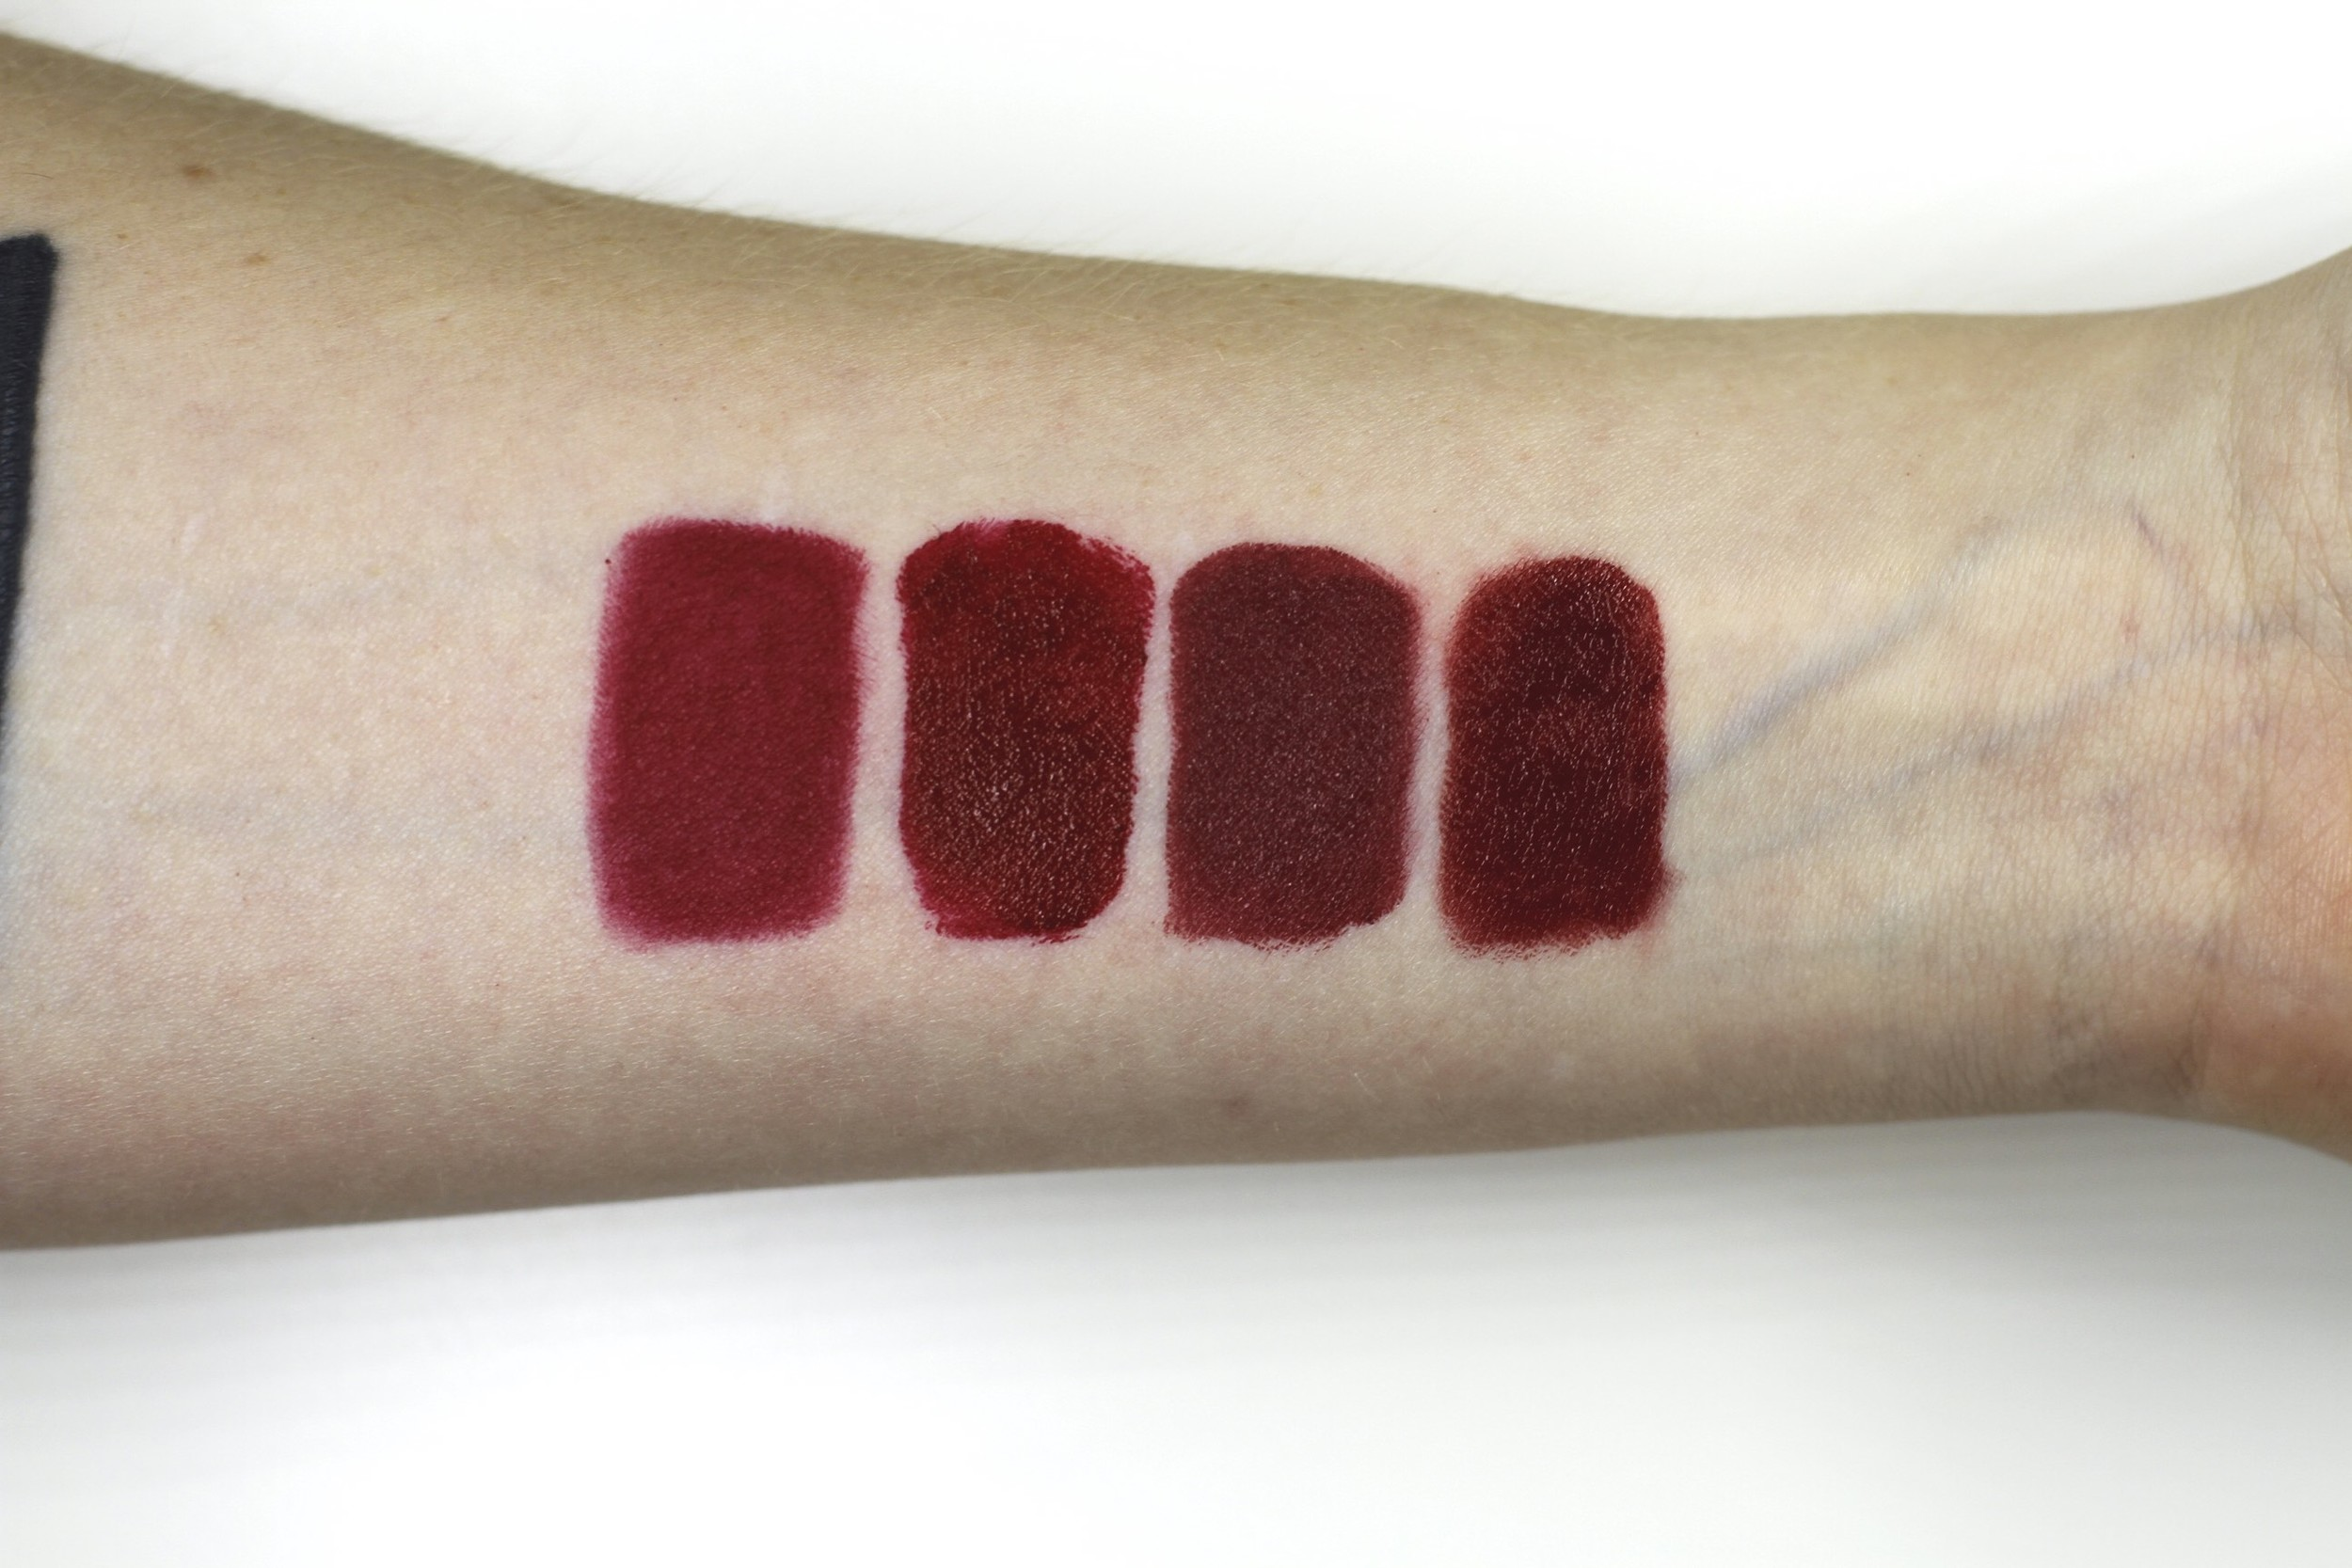 Left to right: Cruella, Bad Blood, Cinnamon Spice, R02